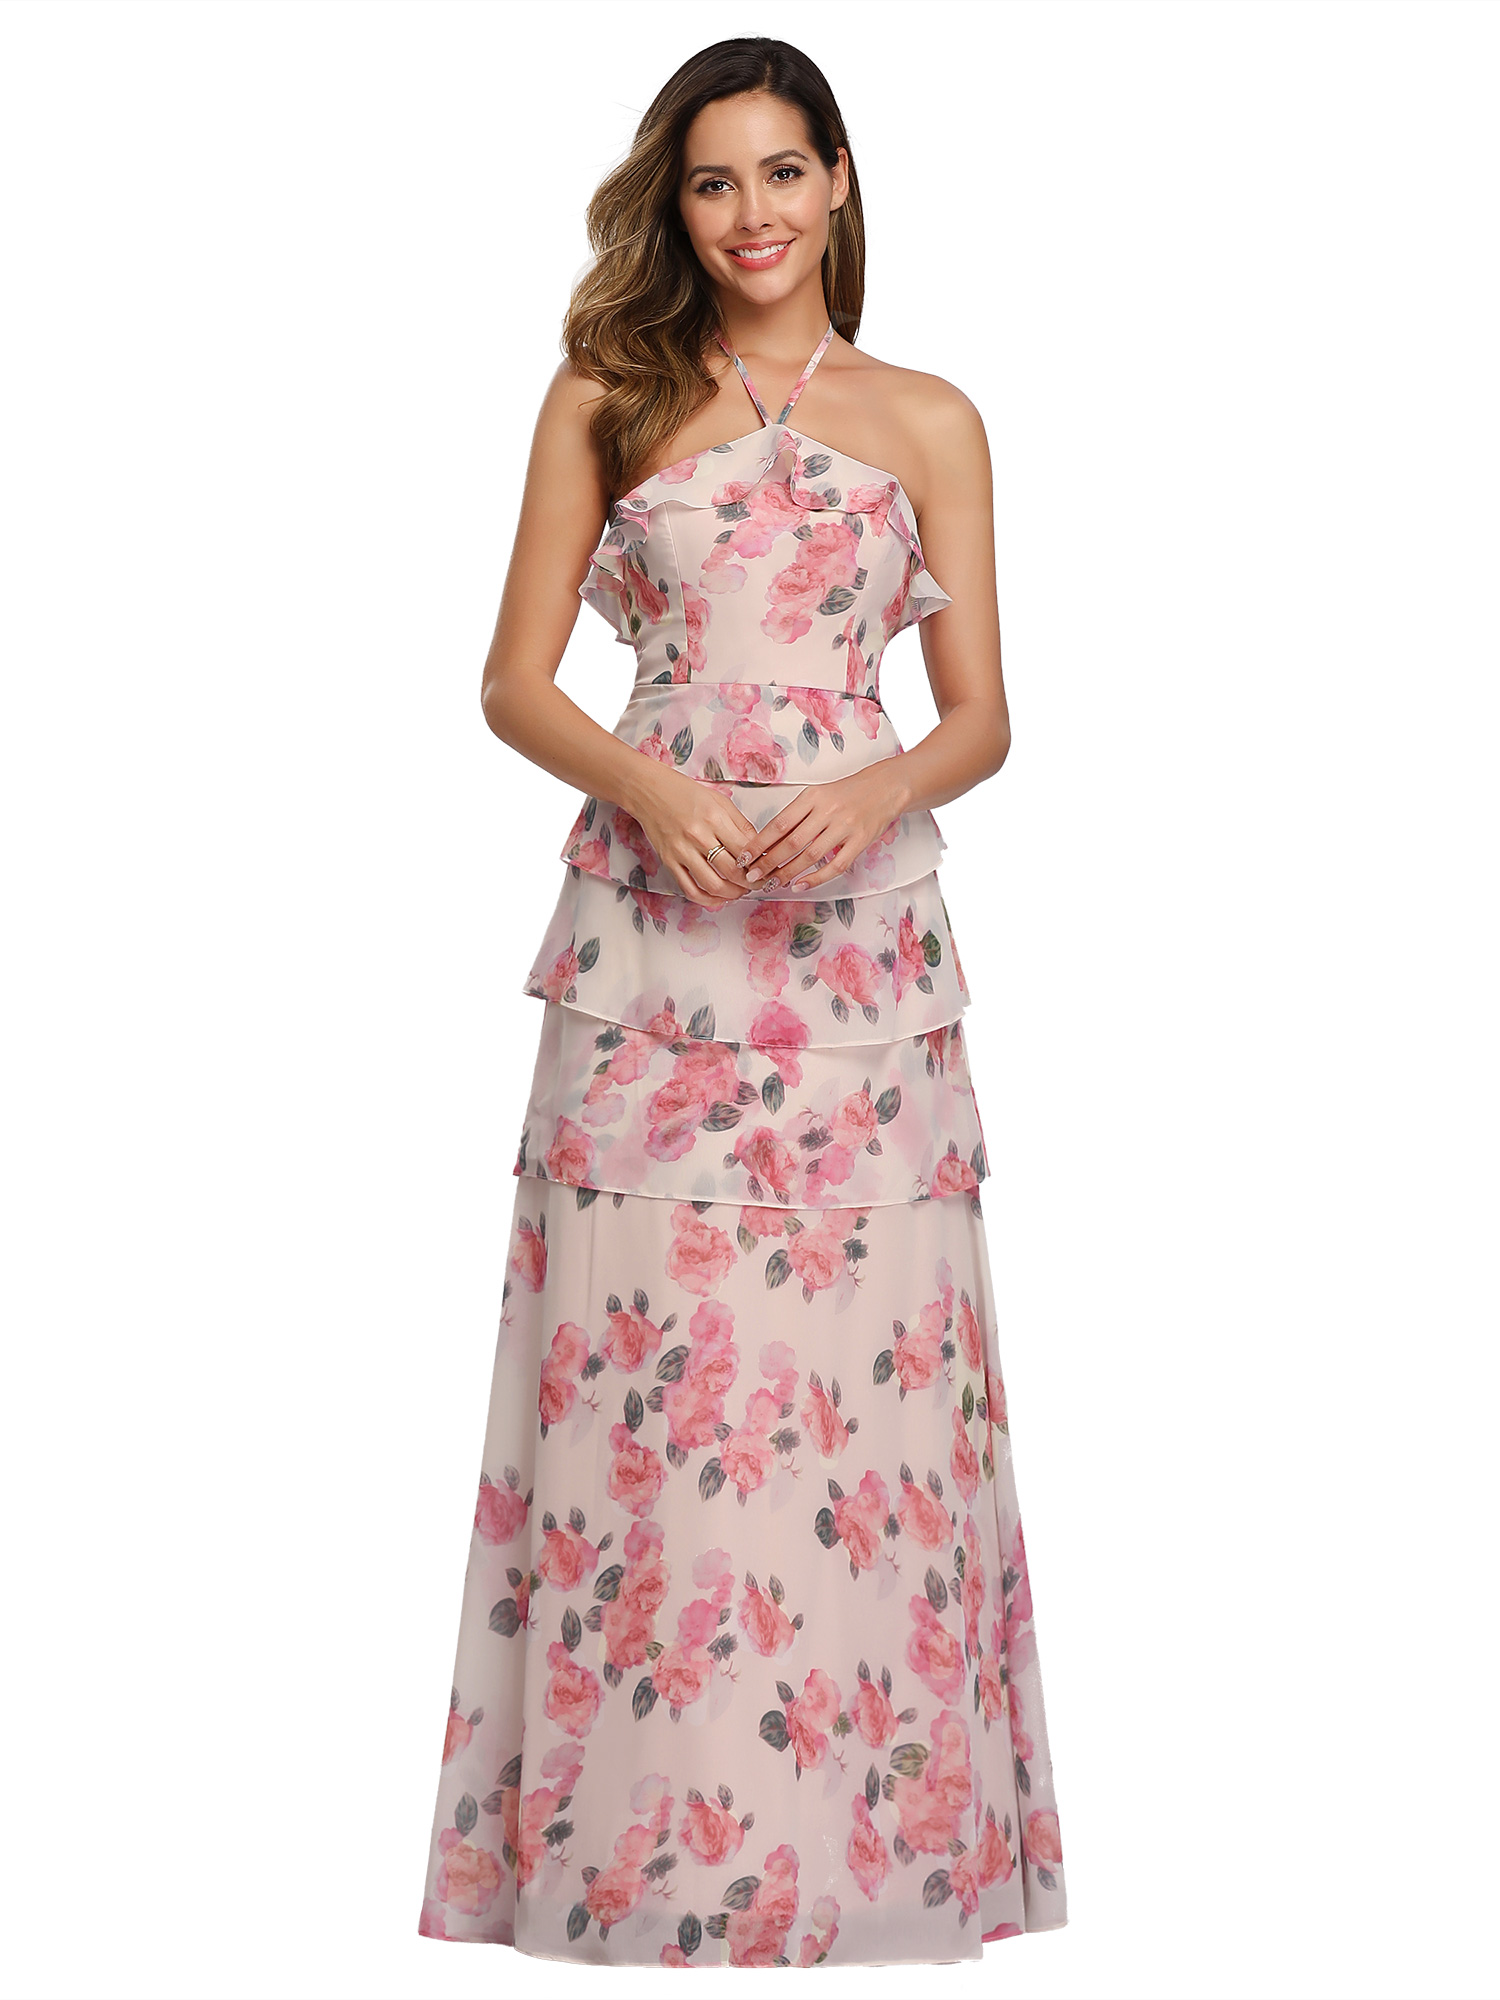 Great deals from lovestoryus in bridesmaid dresses ebay stores 10 off dress ombrellifo Choice Image